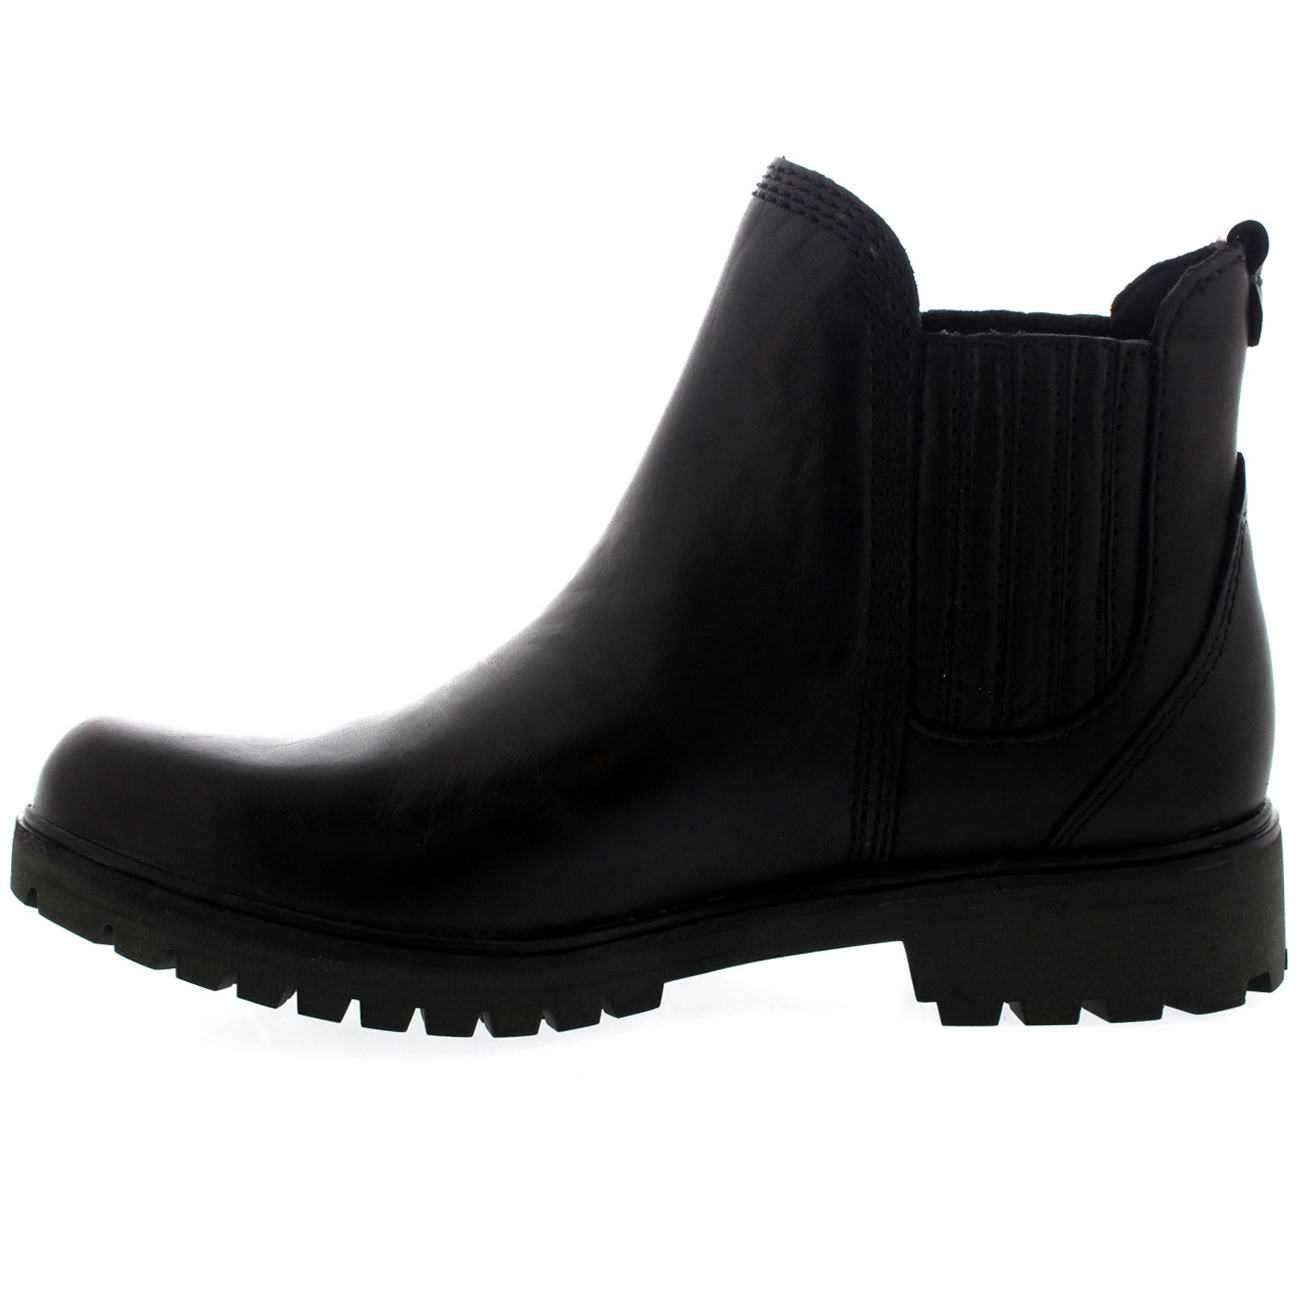 Excellent Marta Jonsson Womens Chelsea Ankle Boots 4999L Womenu0026#39;s Black Boots - Free Returns At Shoes.co.uk